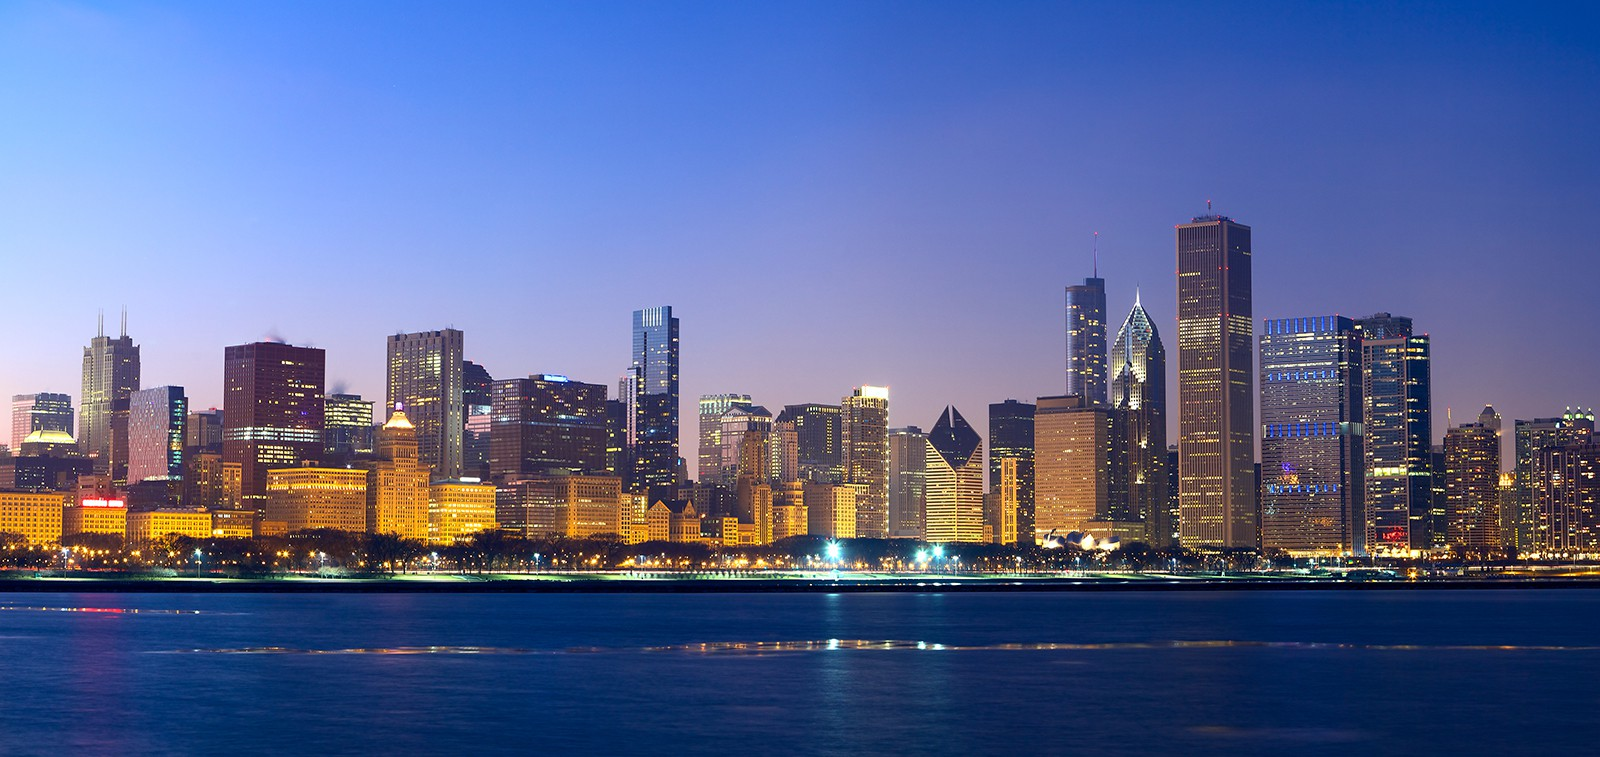 Cairo Chicago flights With Travco Holidays